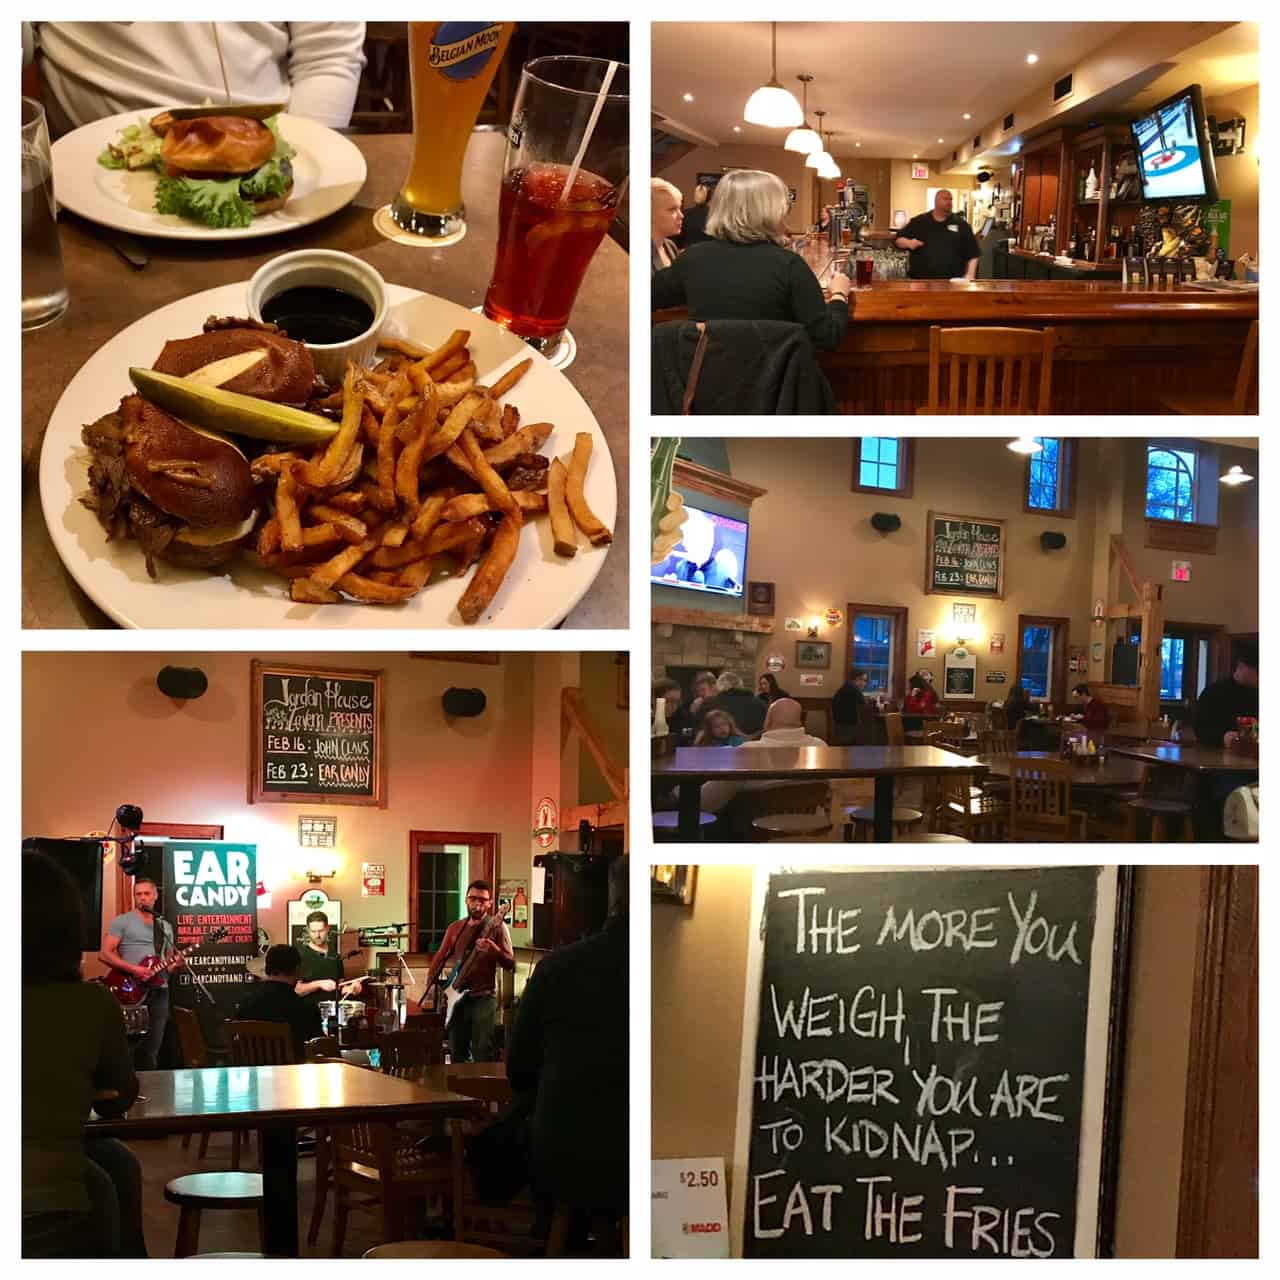 Collage of images from Jordan House Tavern